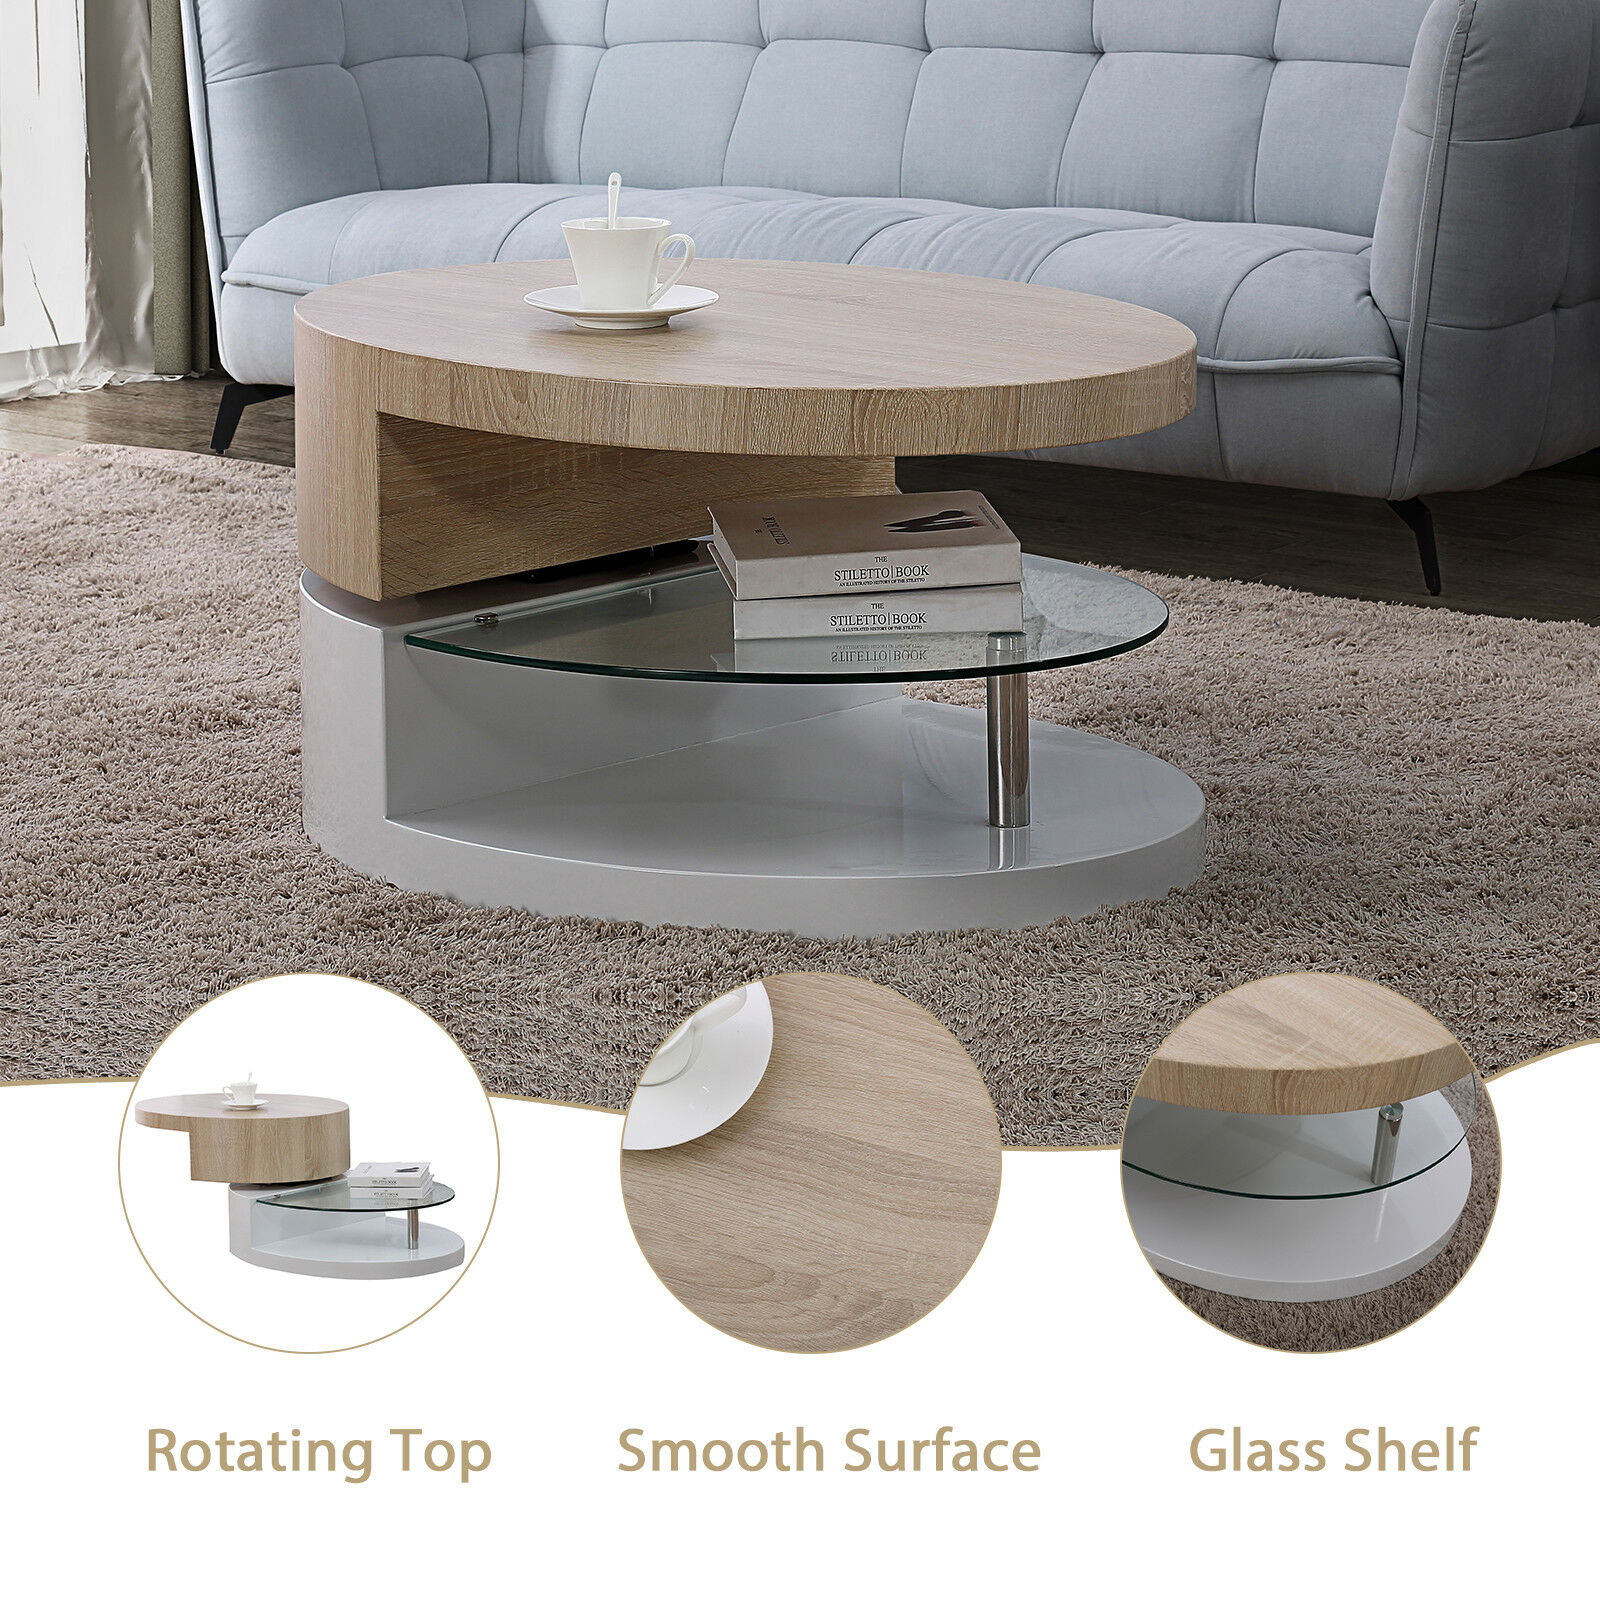 living room glass shelves color schemes with gray couch contemporary oval rotating coffee table w shelf modern rectangular swivel wood furniture